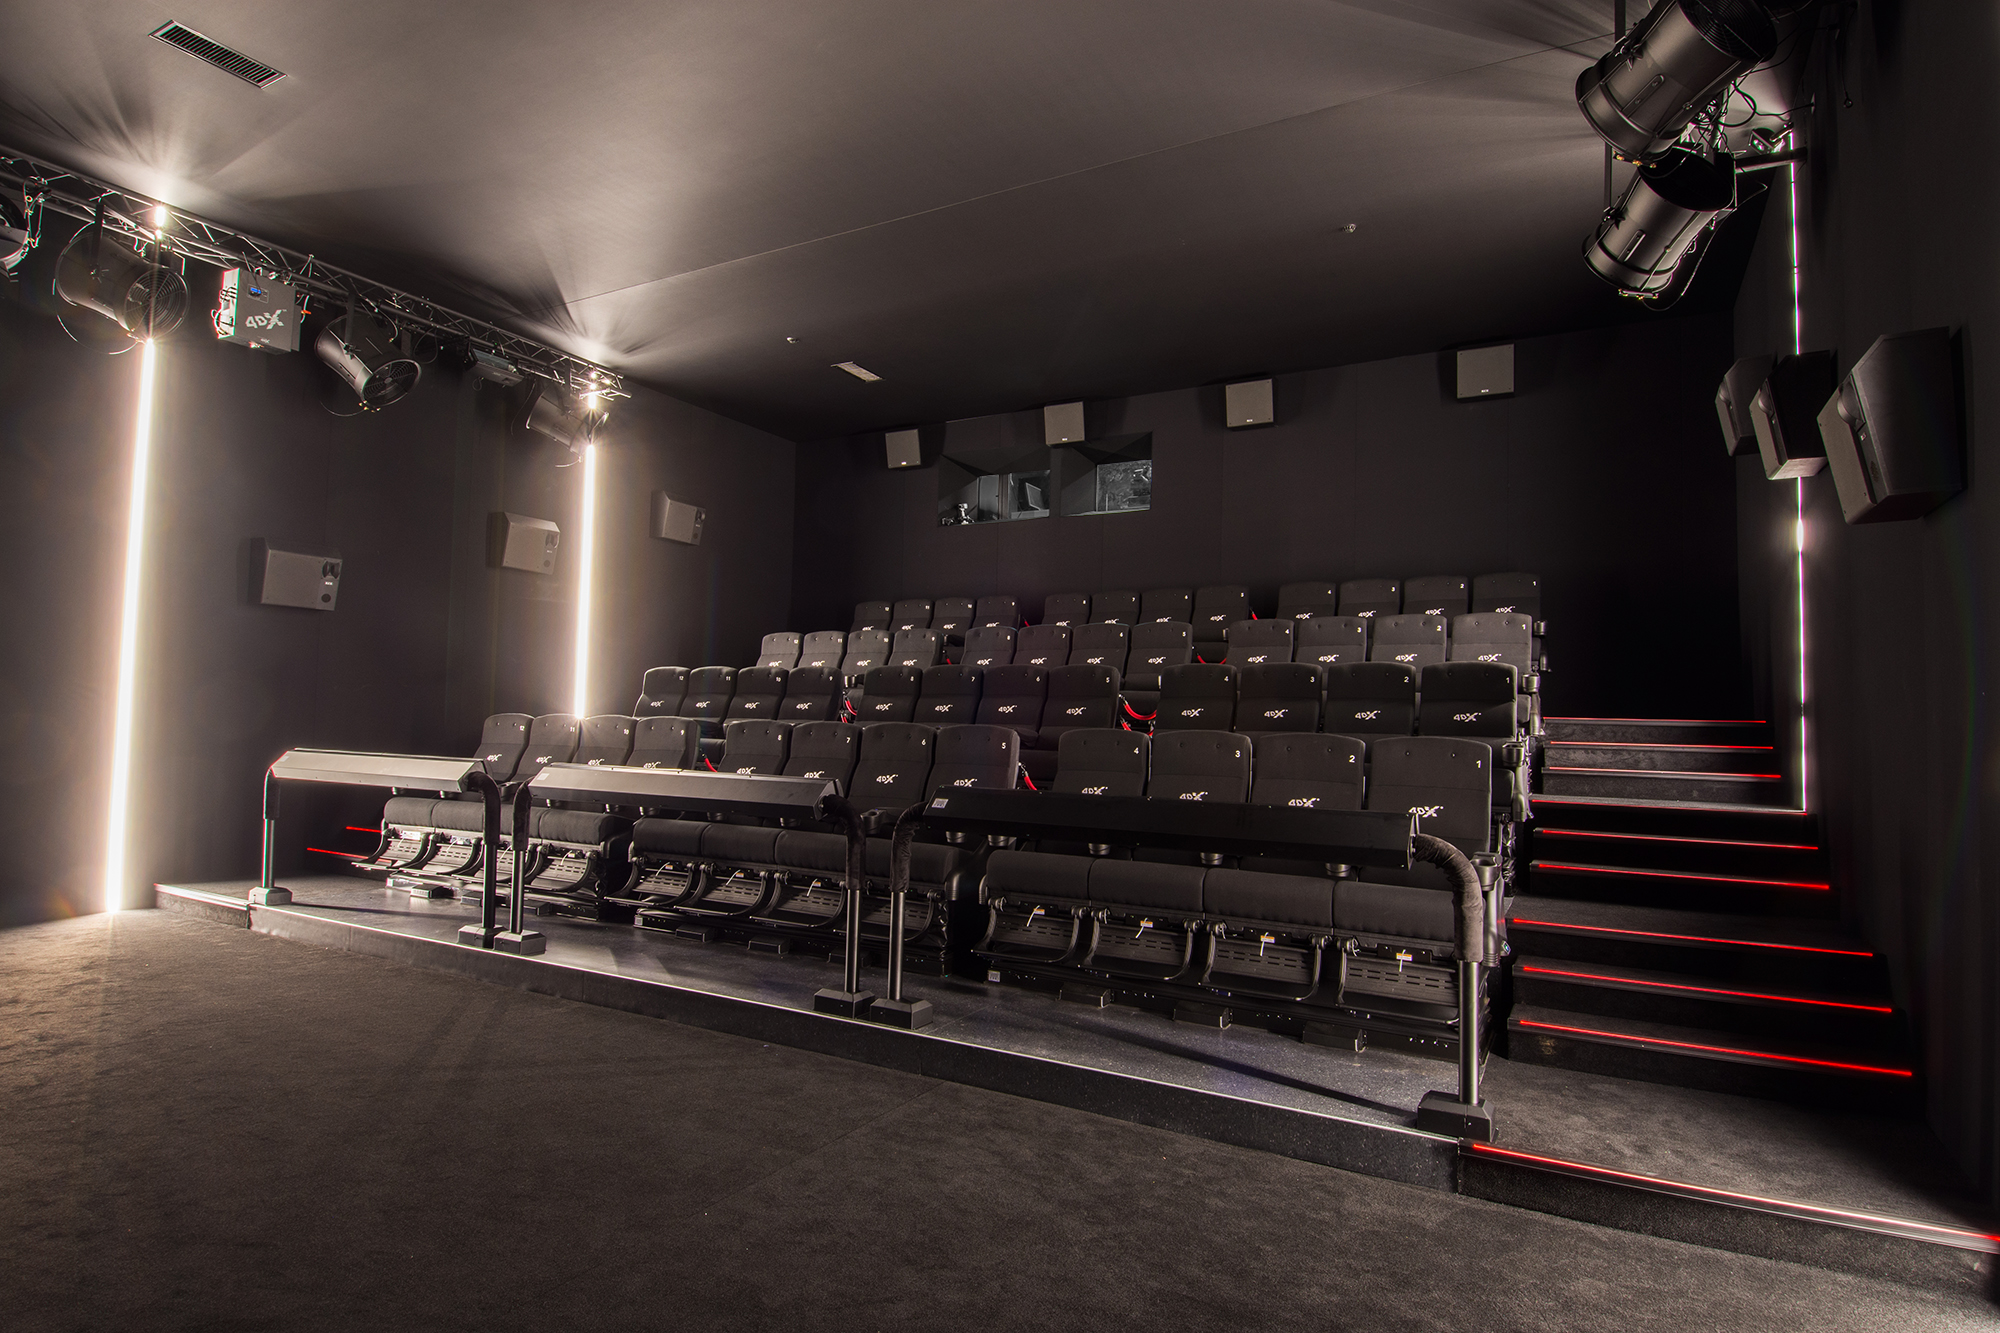 salle auditorium 4dx fribourg centre arena cinemas suisse romande switzerland